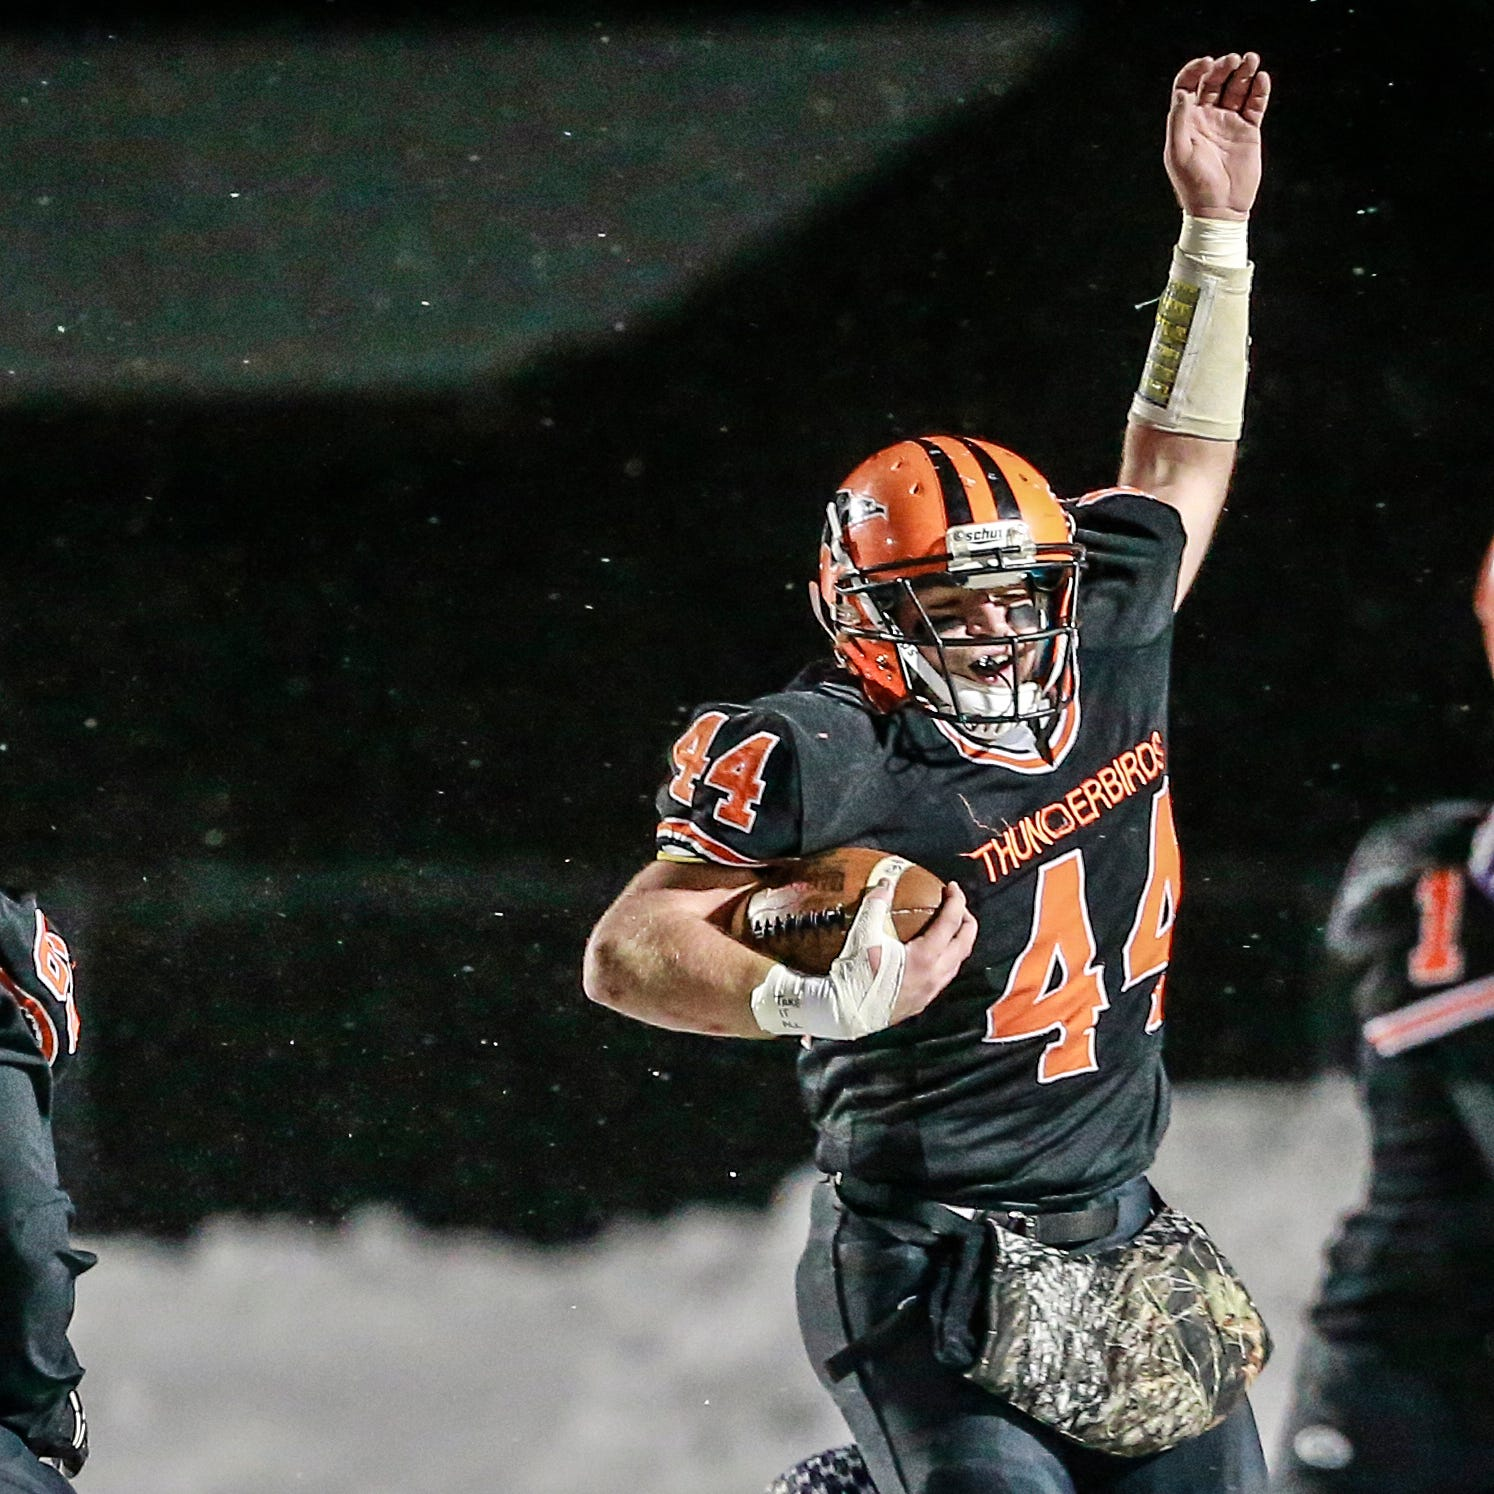 WIAA football: All-time state rushing record all part of job for T-Birds RB Bryce Huettner